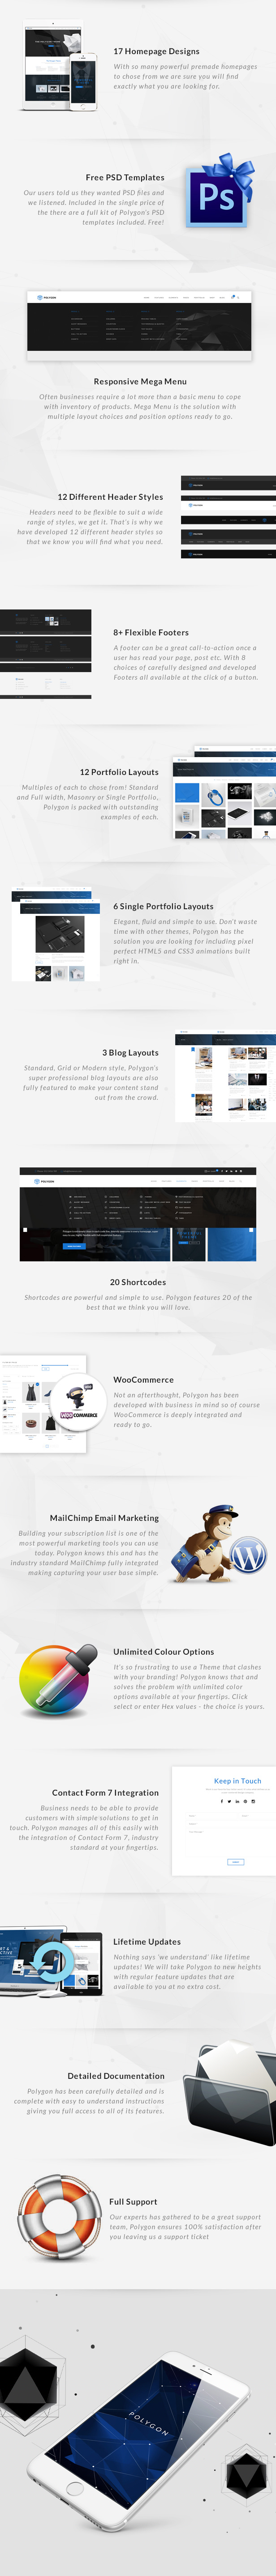 Polygon - A Powerful Multipurpose WP Theme - 9